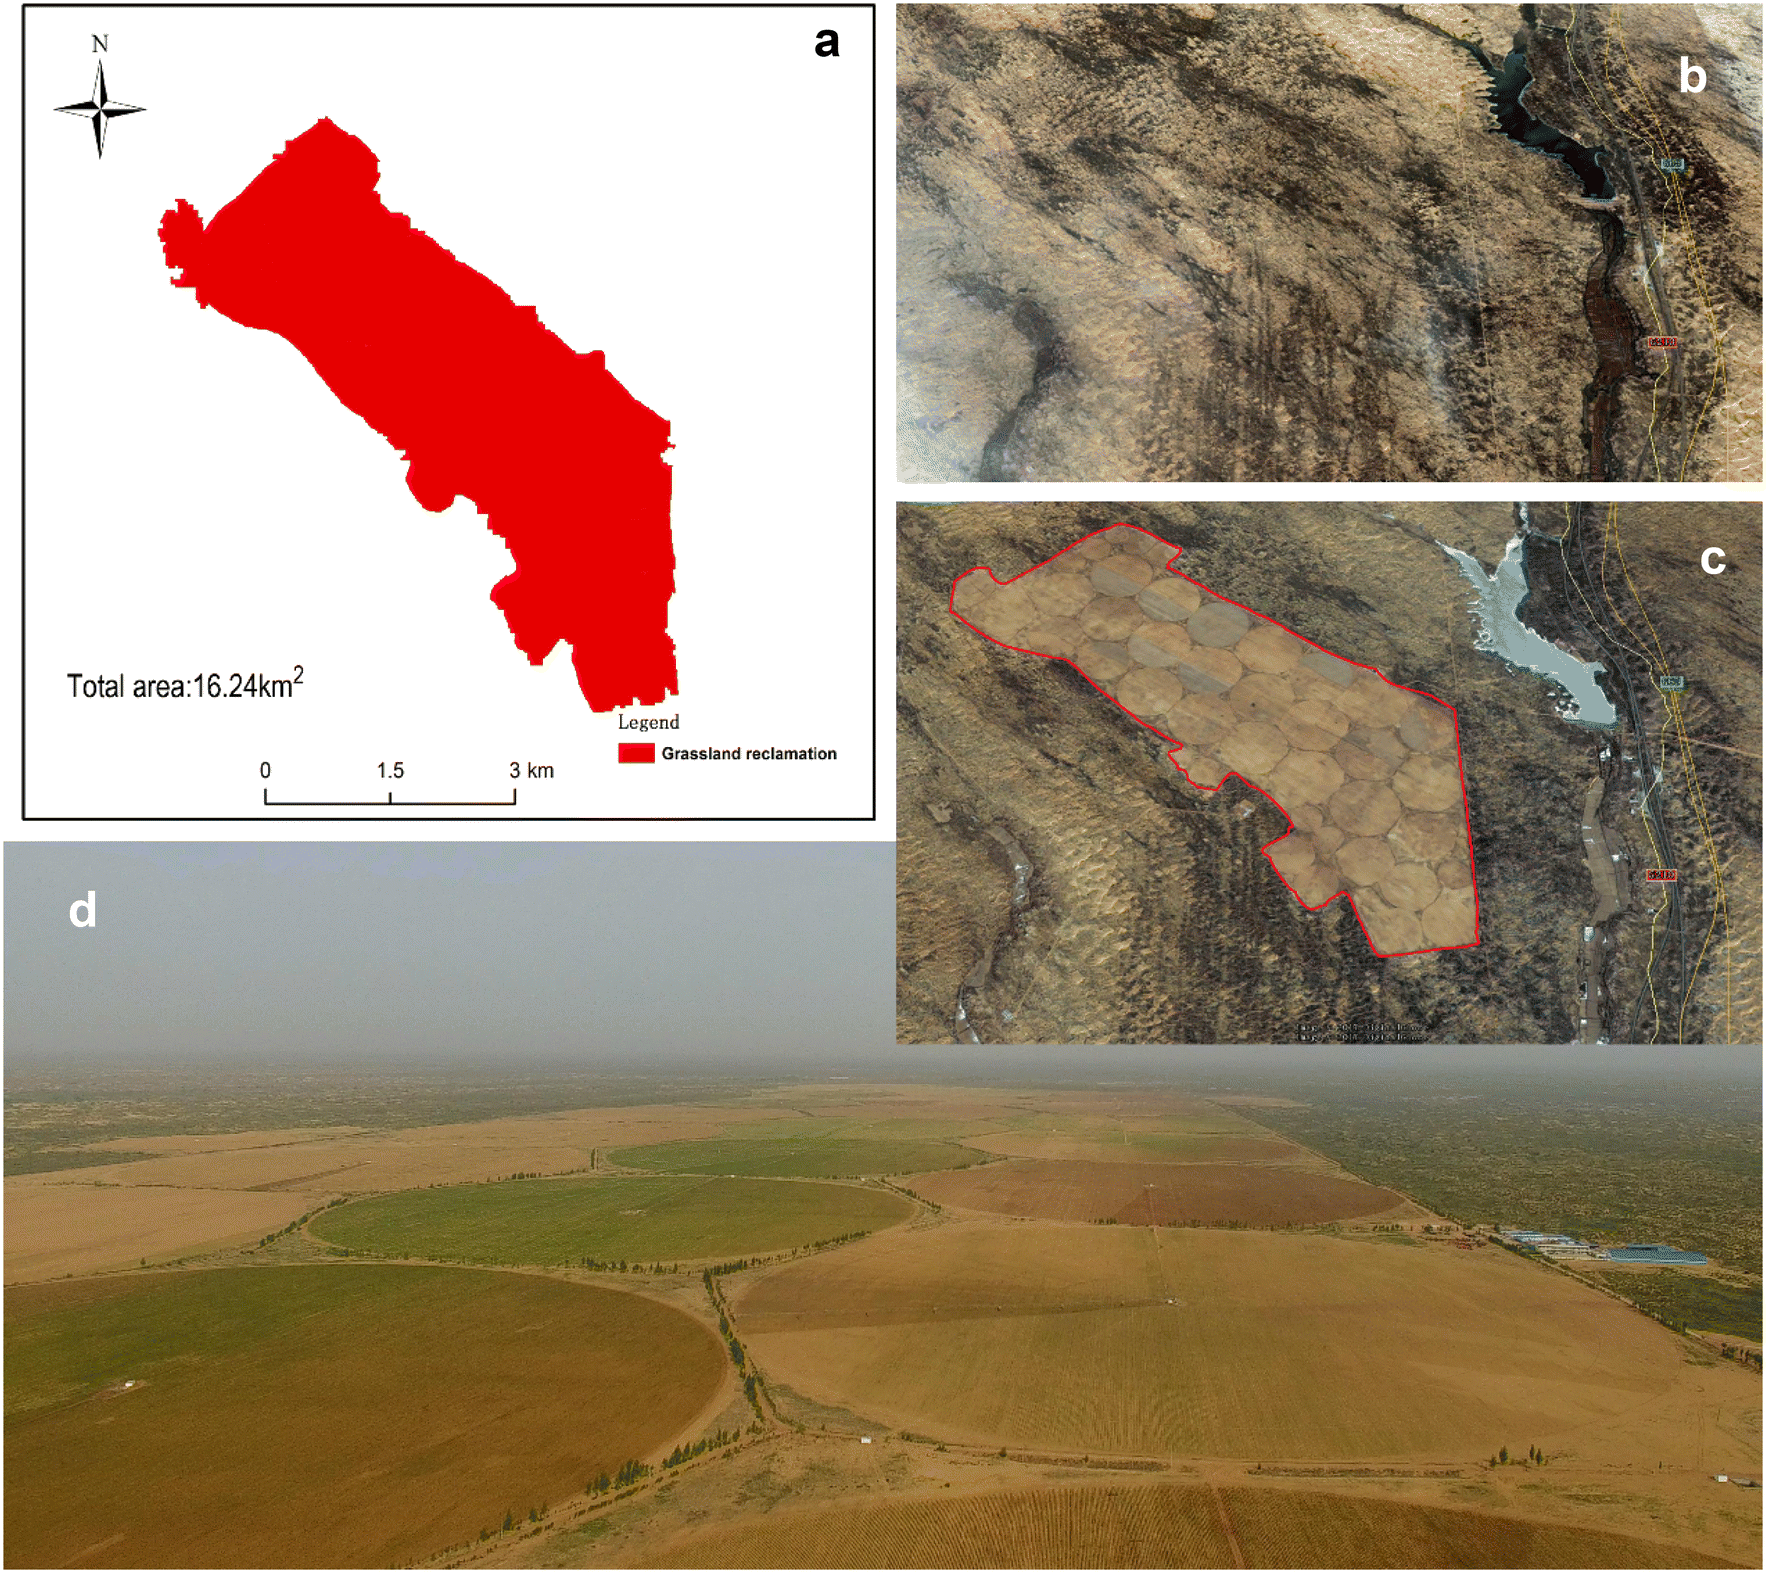 Monitoring grassland reclamation in the Mu Us Desert using